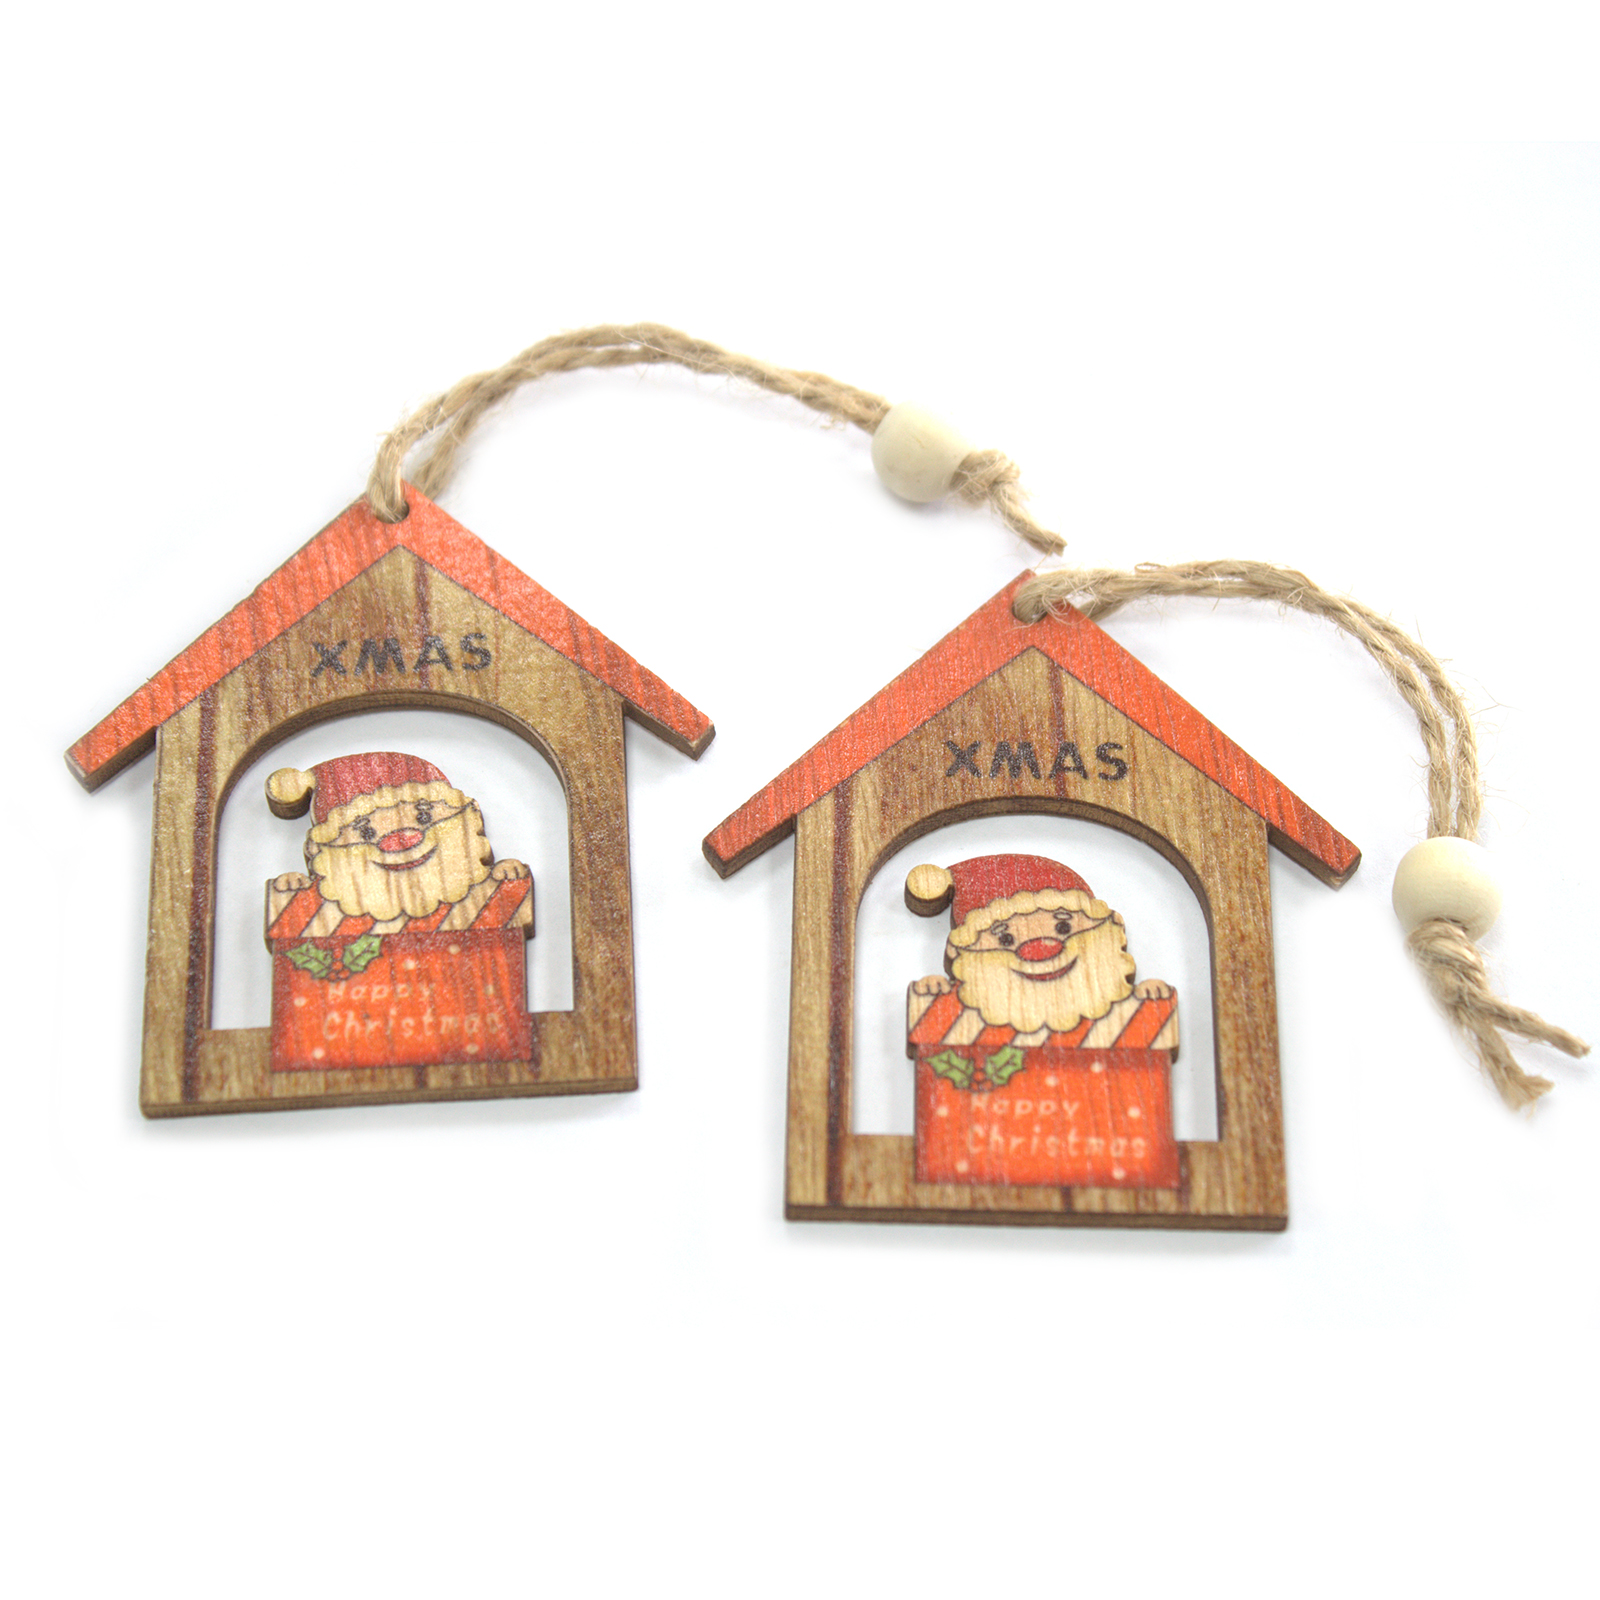 Pack of 2 Christmas Wooden Craft Decorations - Christmas Santa Gift